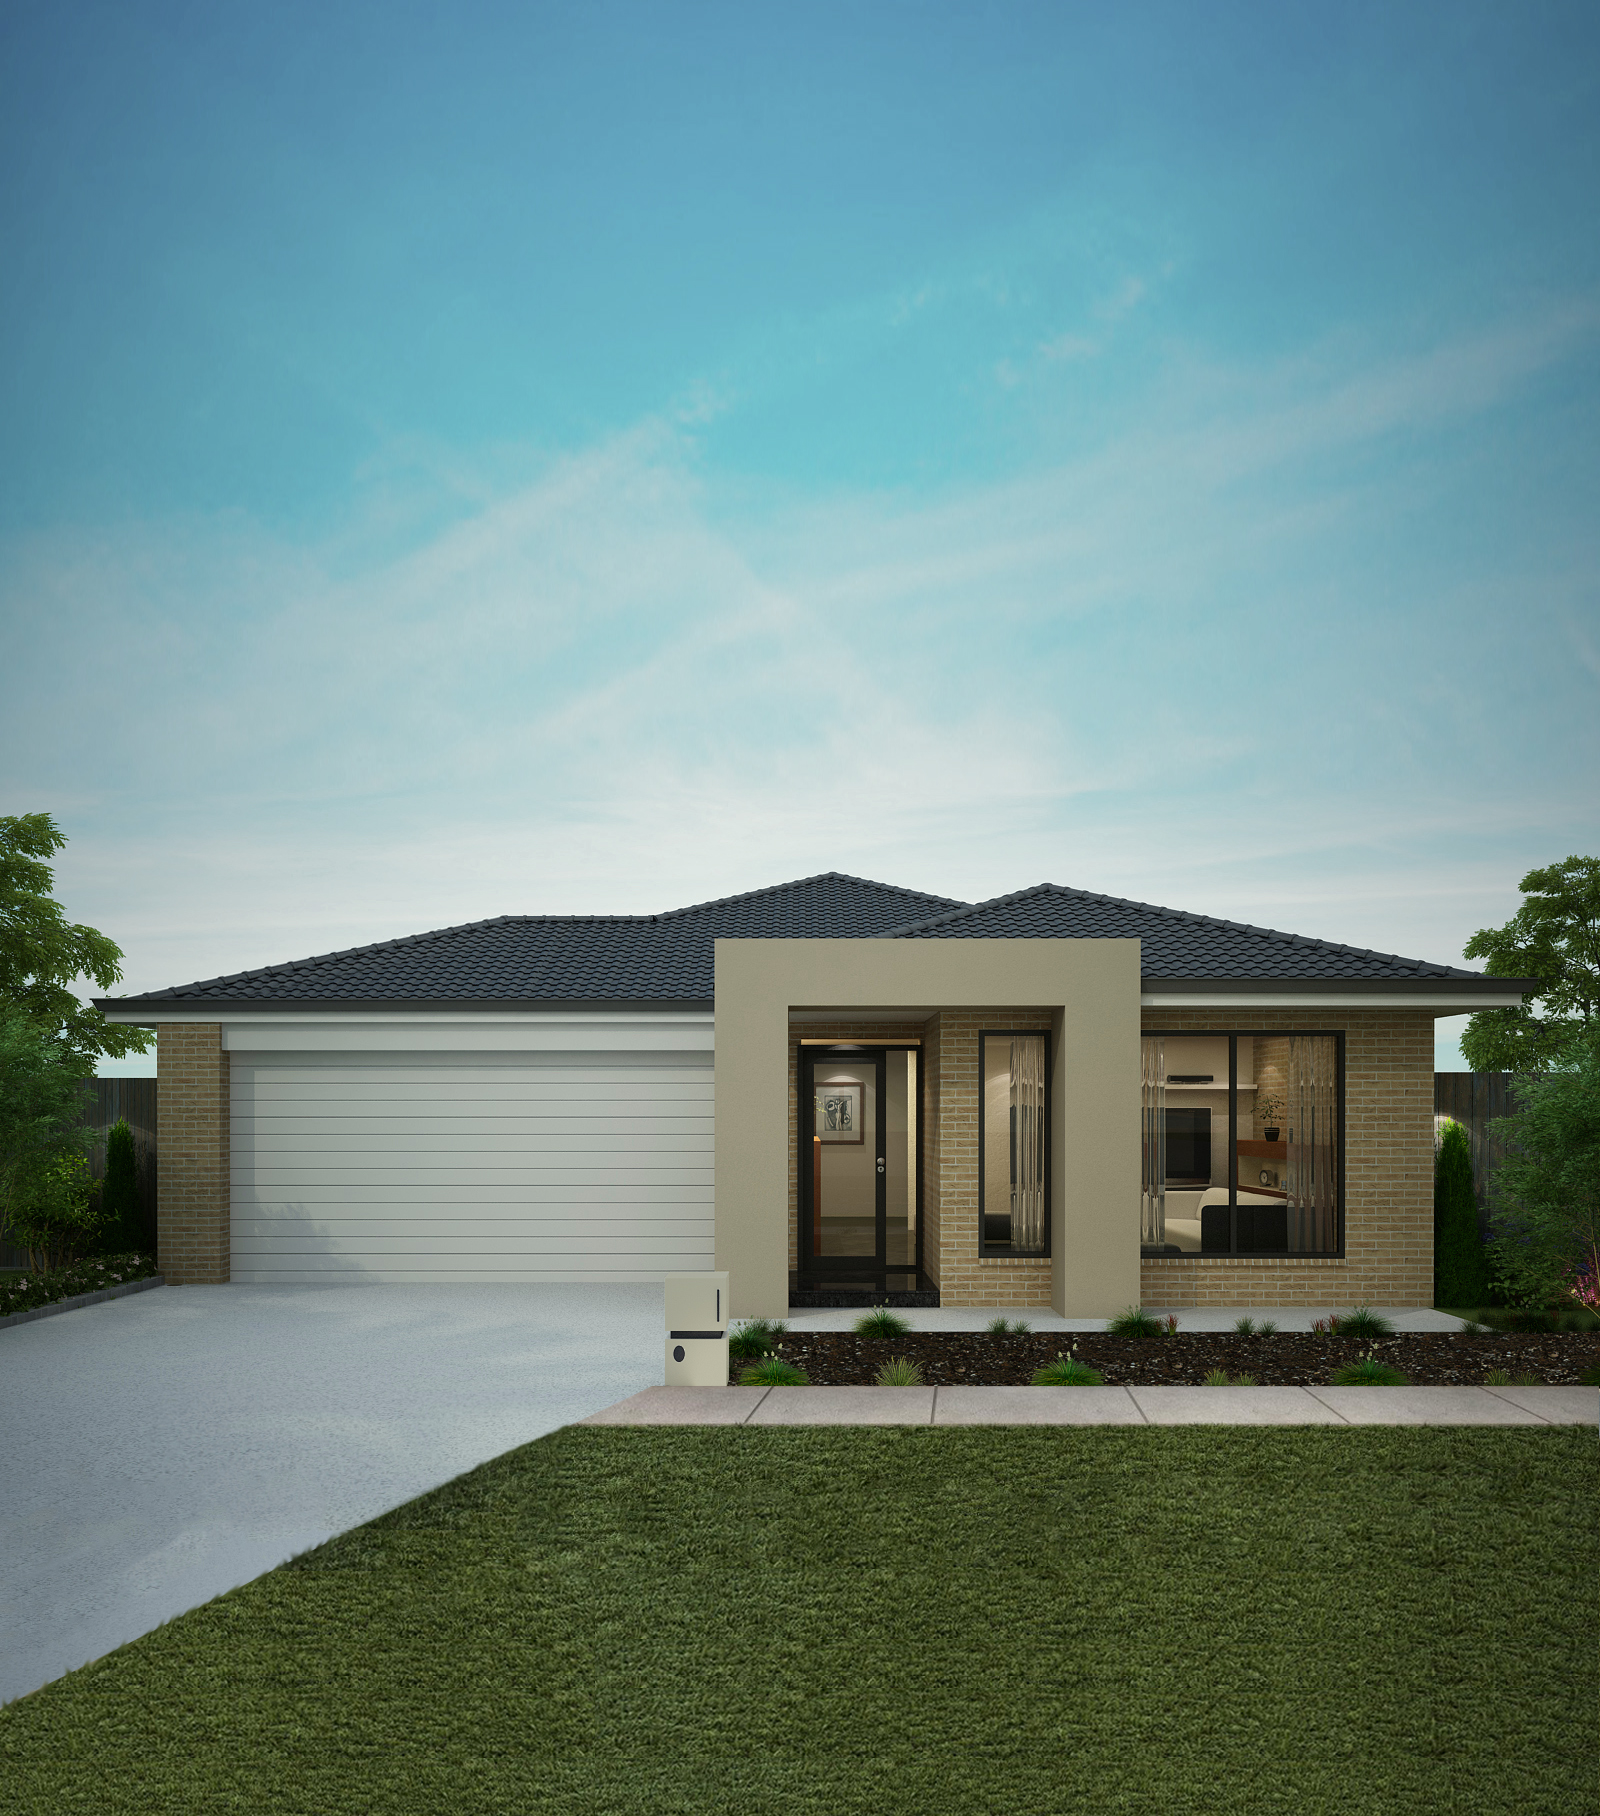 Lot 2937 Yearling Promenade, Werribee